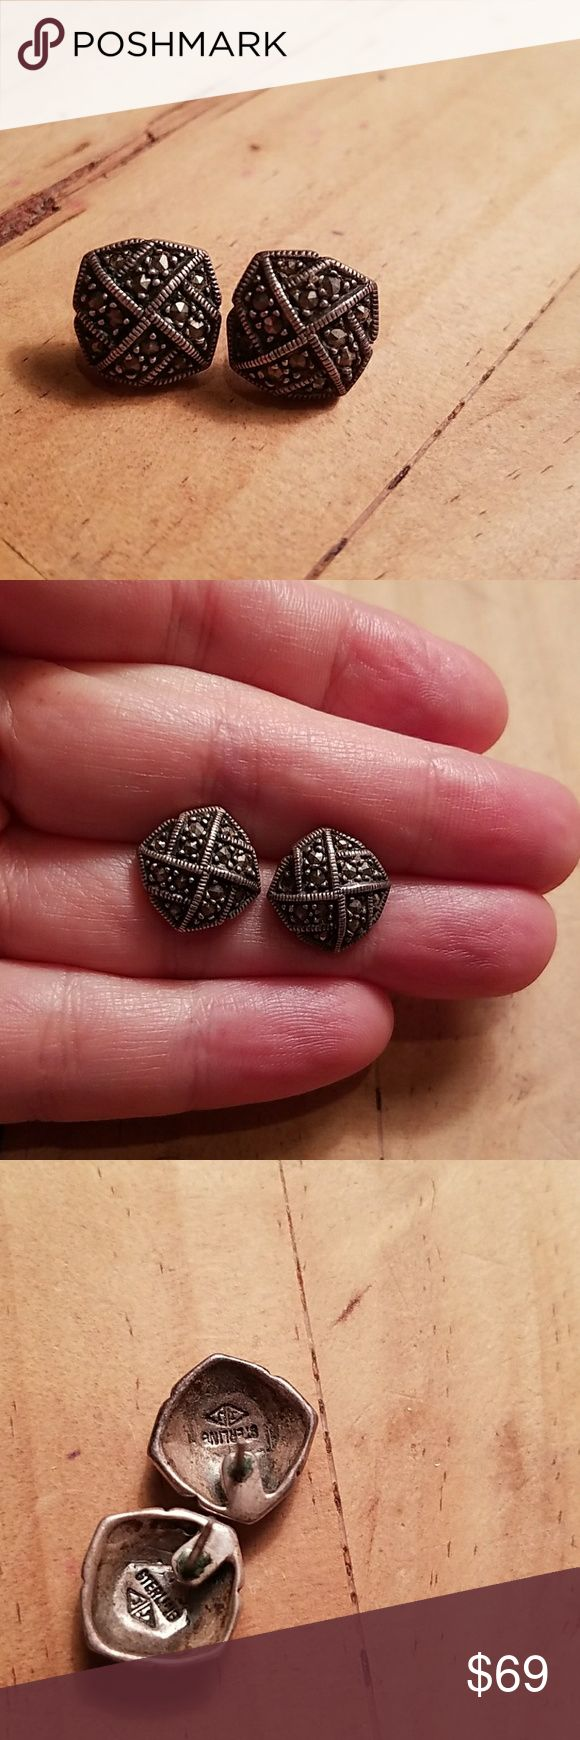 Judith Jack vintage marcasite stud earrings Judith Jack vintage marcasite stud earrings   Marked Sterling & J J in triangles  4.9 grams,  14mm x 14mm  Beautiful patina  No backs  Great condition for their age Judith Jack Jewelry Earrings